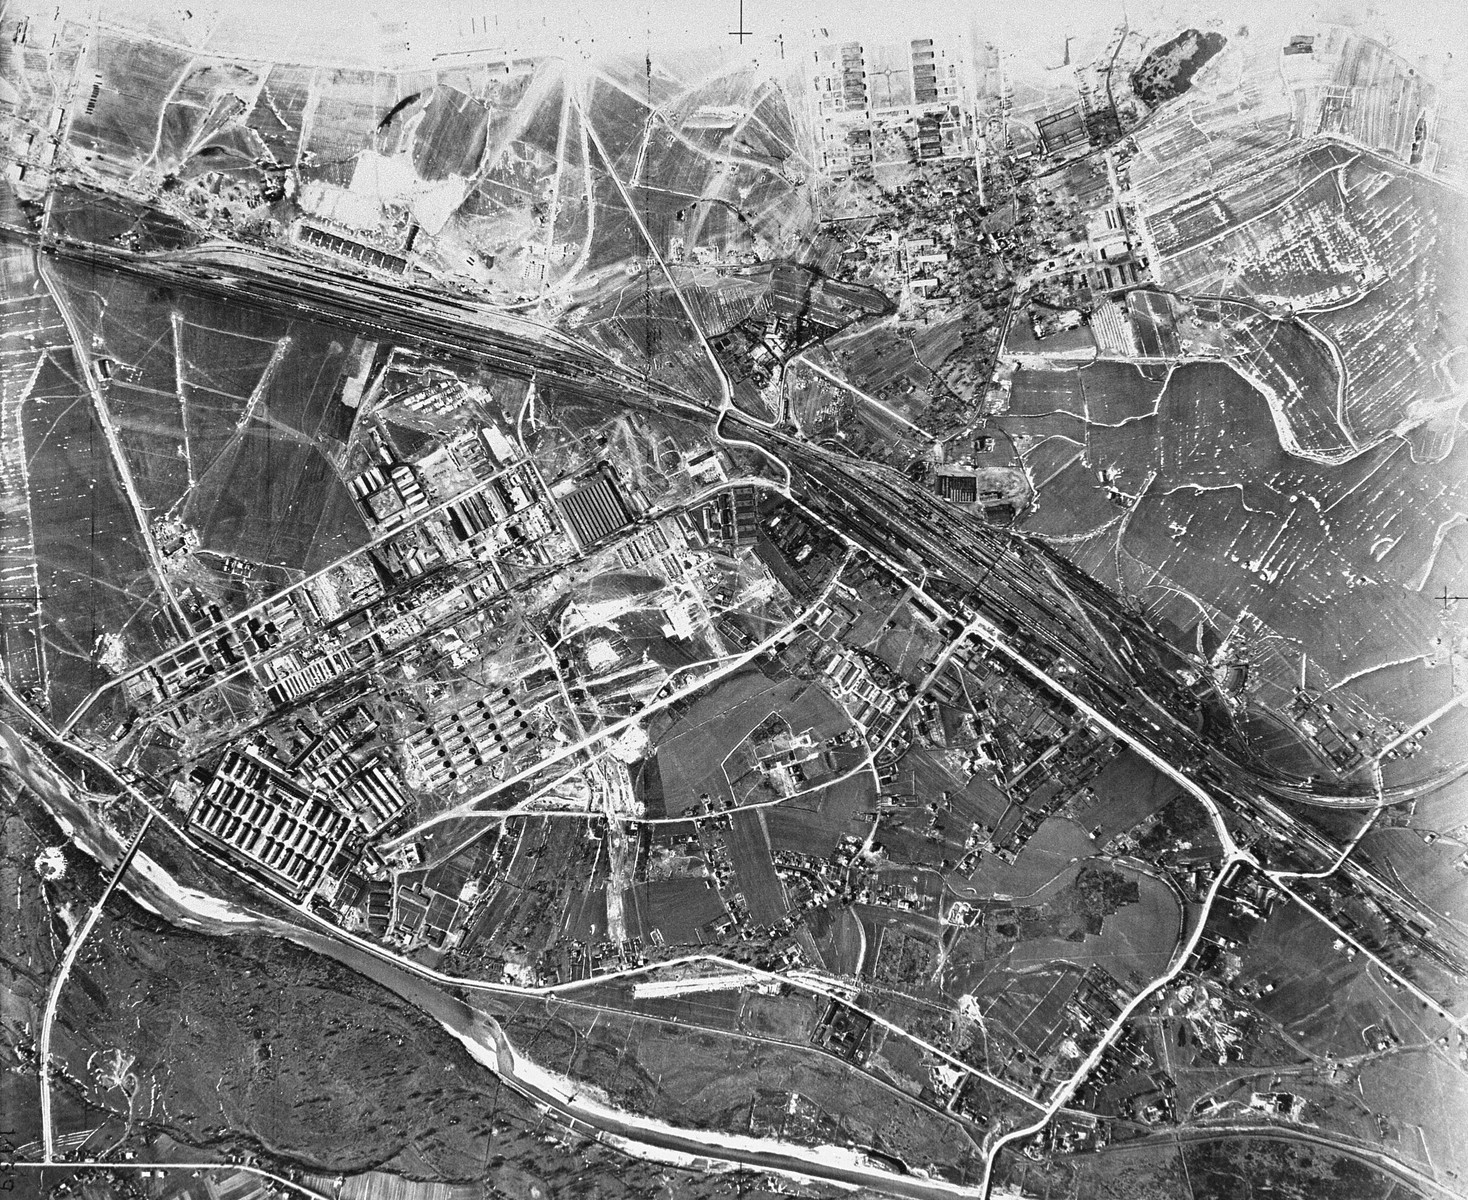 "An aerial reconnaissance photograph of the Auschwitz area showing the Auschwitz I camp. [Oversized photo]  Mission:  60 PR 288 60 SQ;  Scale: 1/15,569;  Focal Length: 20"";  Altitude: 26,000'"